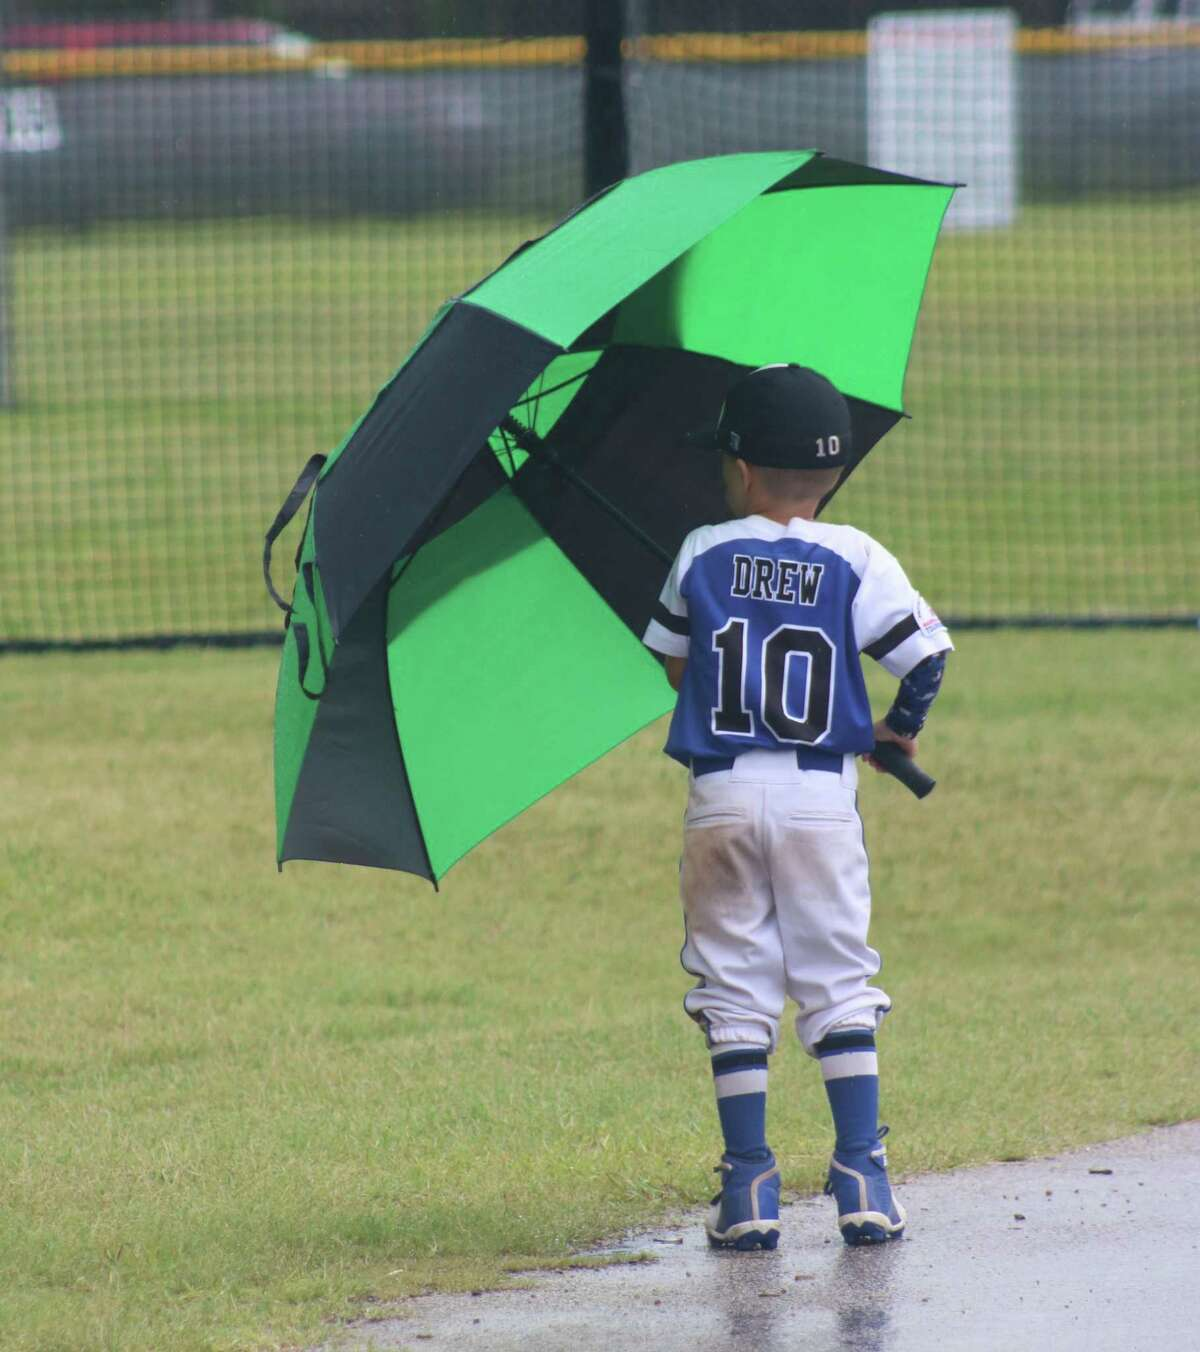 Friendswood Blue Shetland outfielder Jacob Drew stayed dry with the help of his big umbrella after a brief heavy downpour hit Renwick Park Sunday afternoon. Jacob and Co. defeated Crosby Sunday 25-15, forcing a second title game in the Blue Bracket.